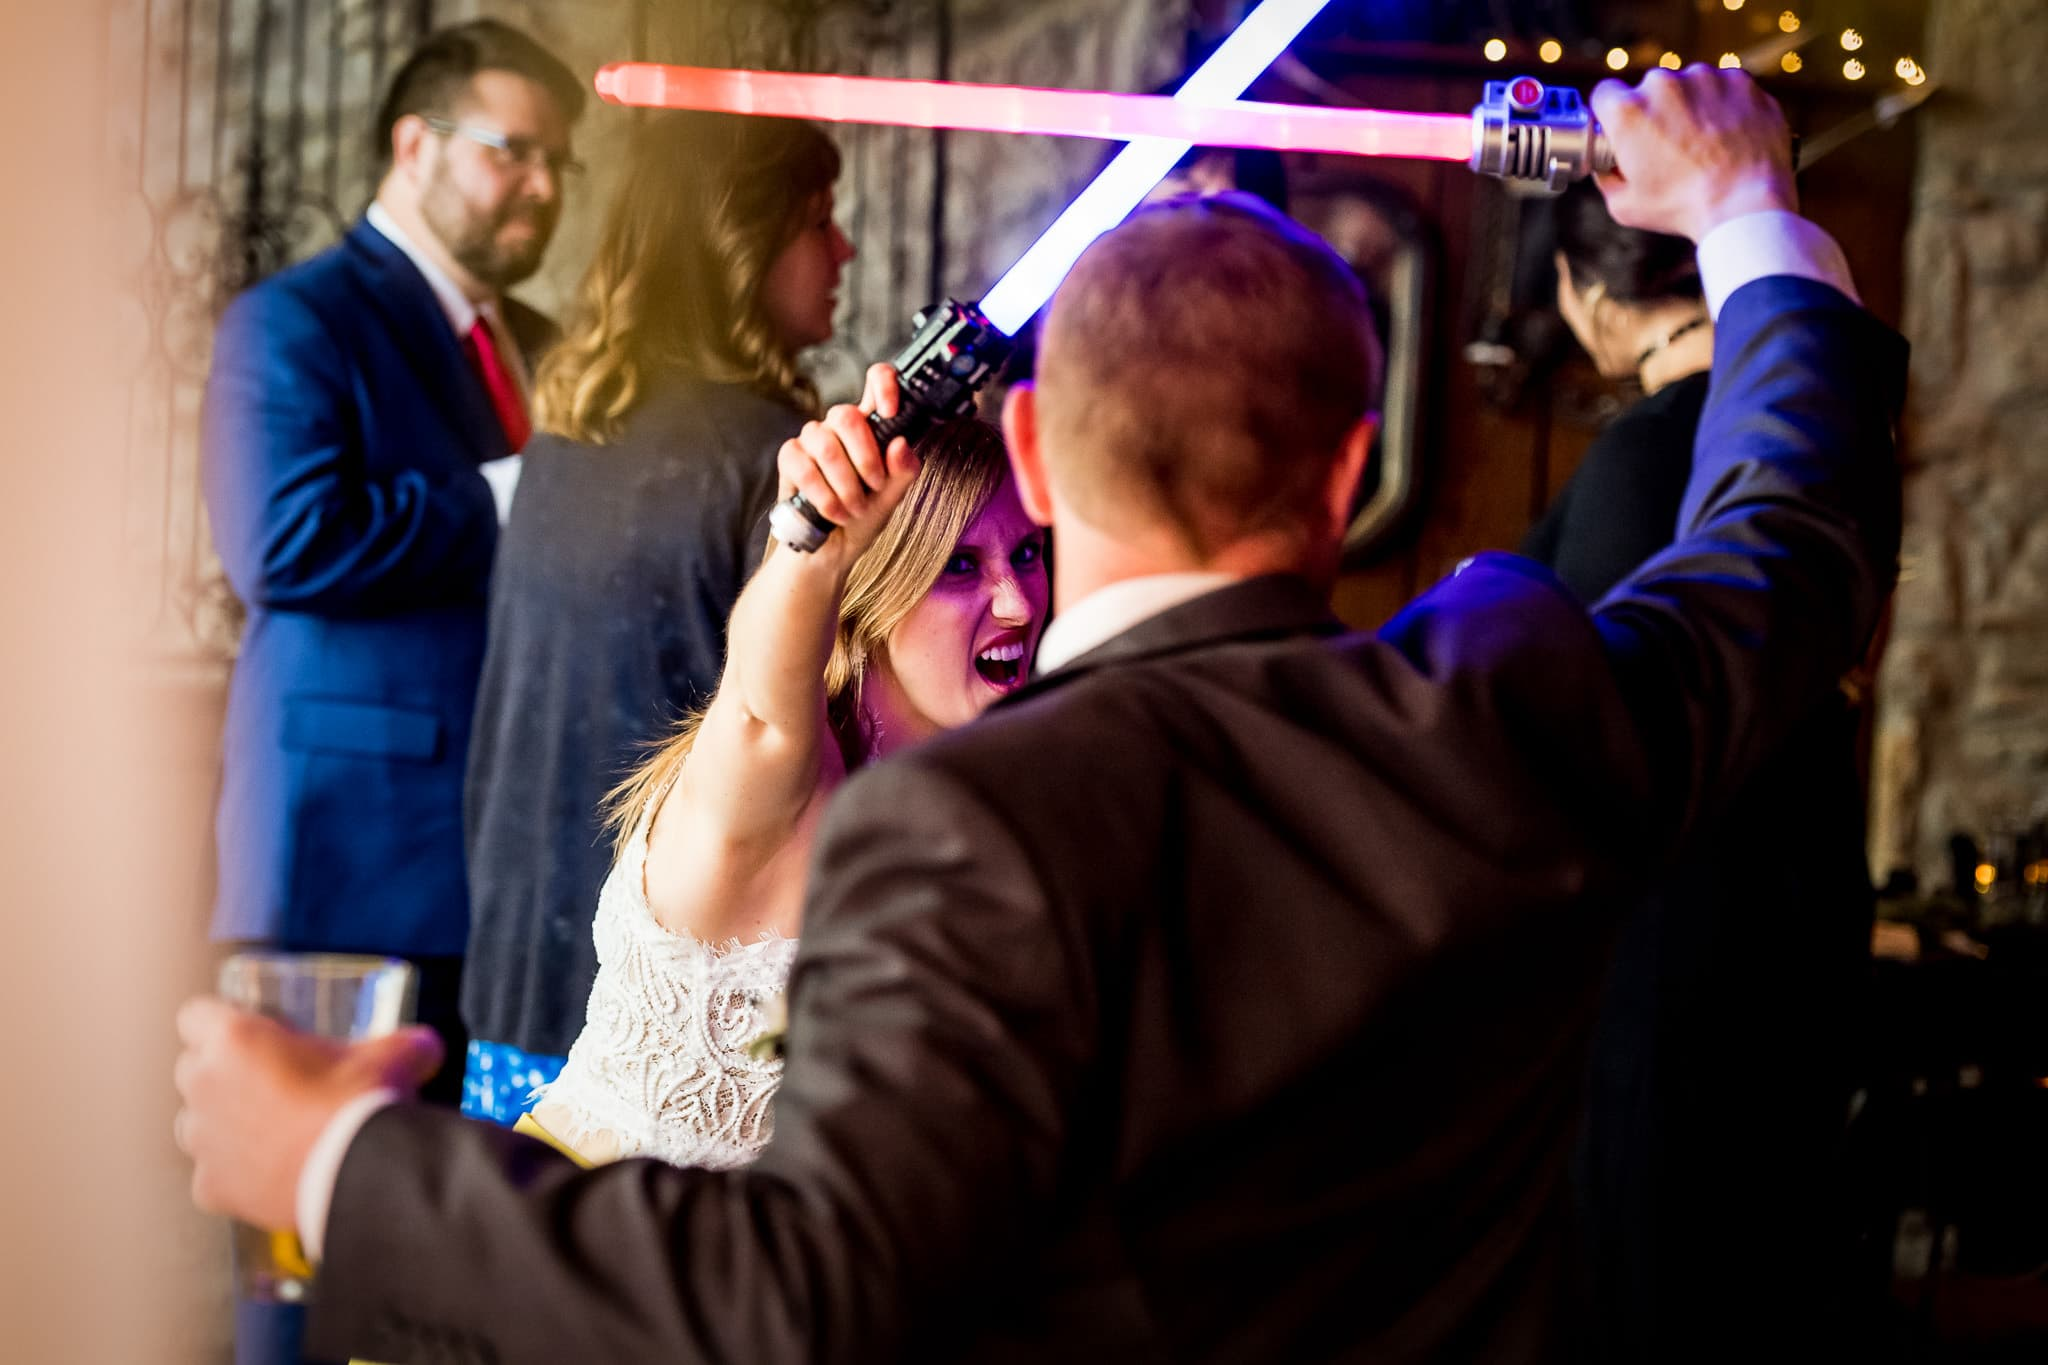 Star Wars Light Saber battle during the wedding reception in the River Room at Aster Cafe 2